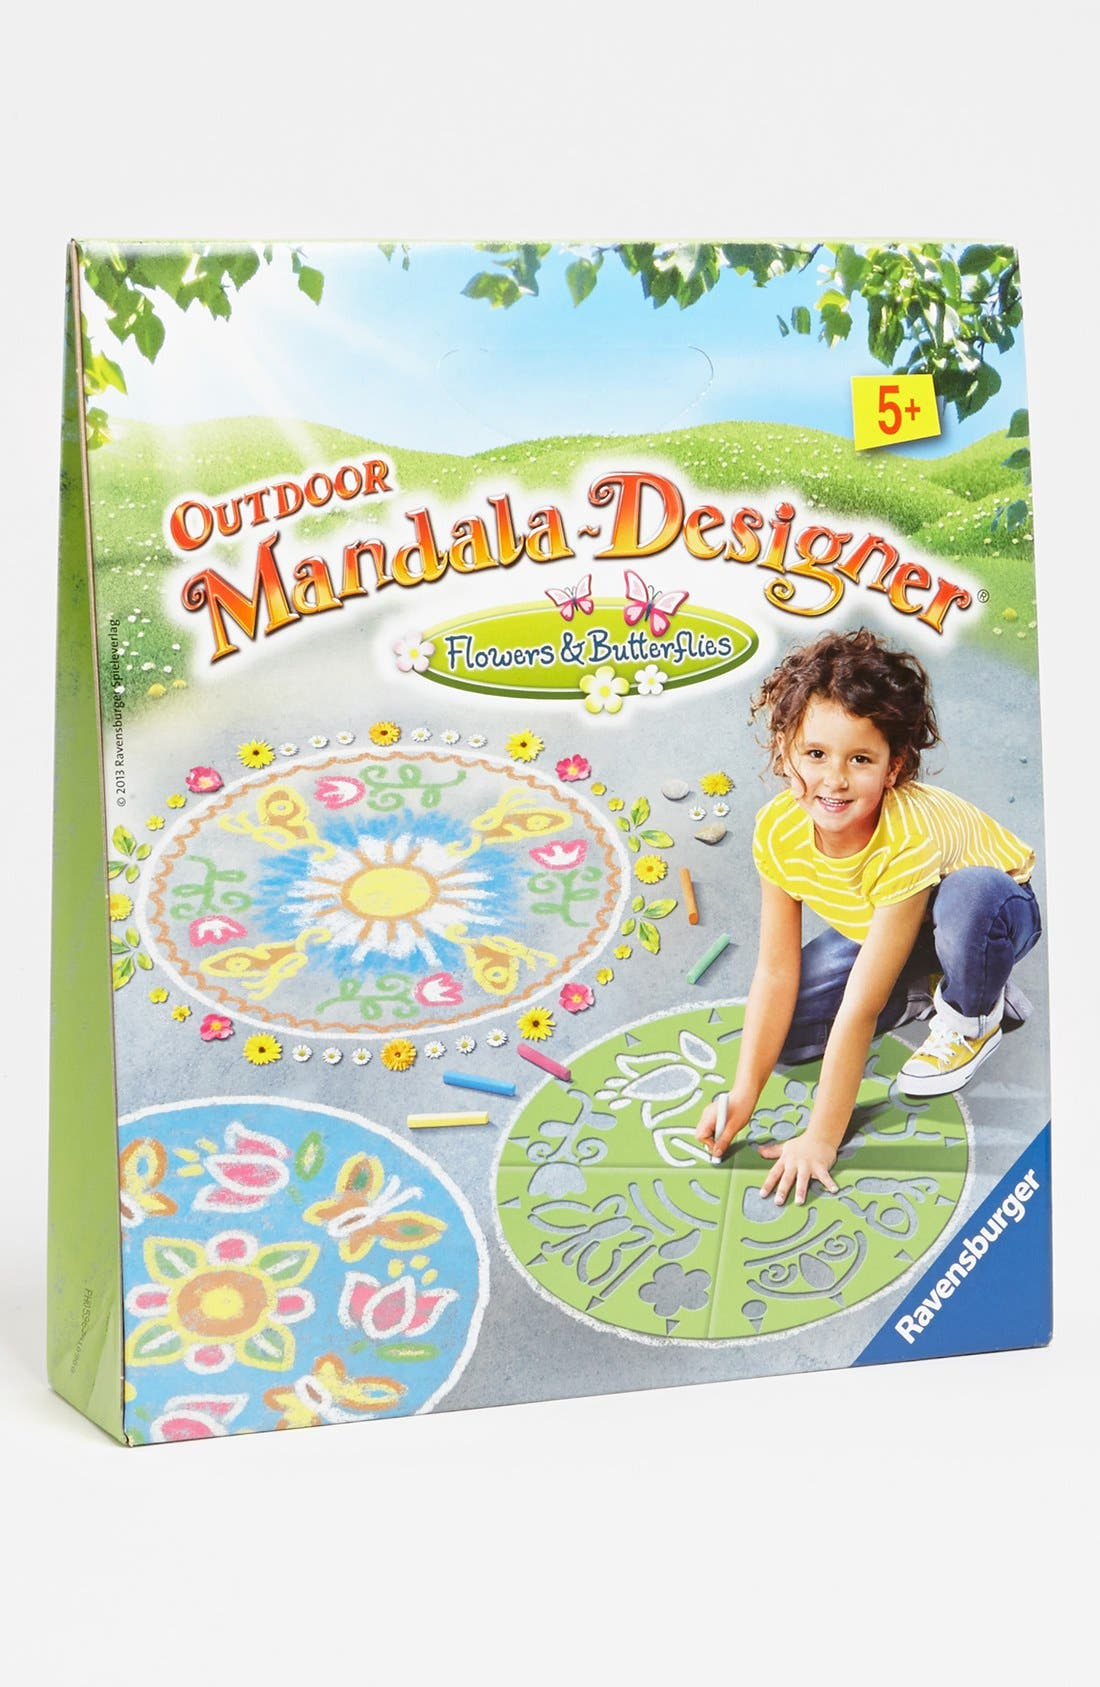 Alternate Image 1 Selected - Ravensburger 'Flowers & Butterflies' Outdoor Mandala Designer